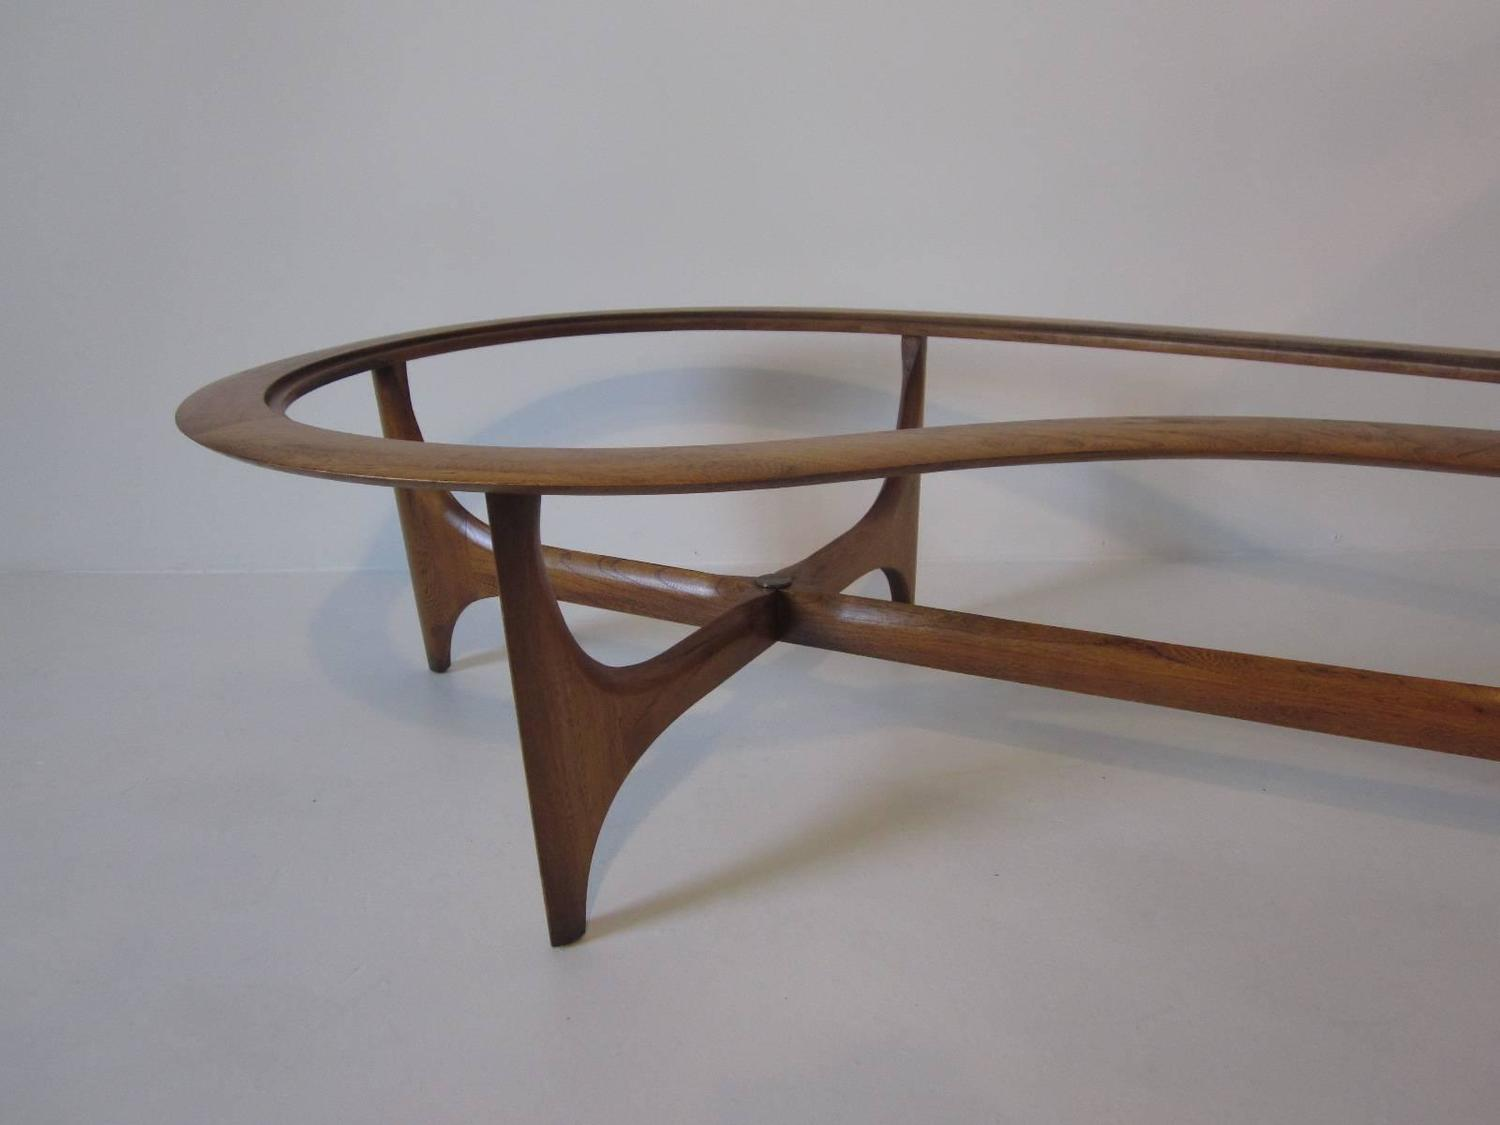 Biomorphic Sculptural Coffee Table For Lane At 1stdibs